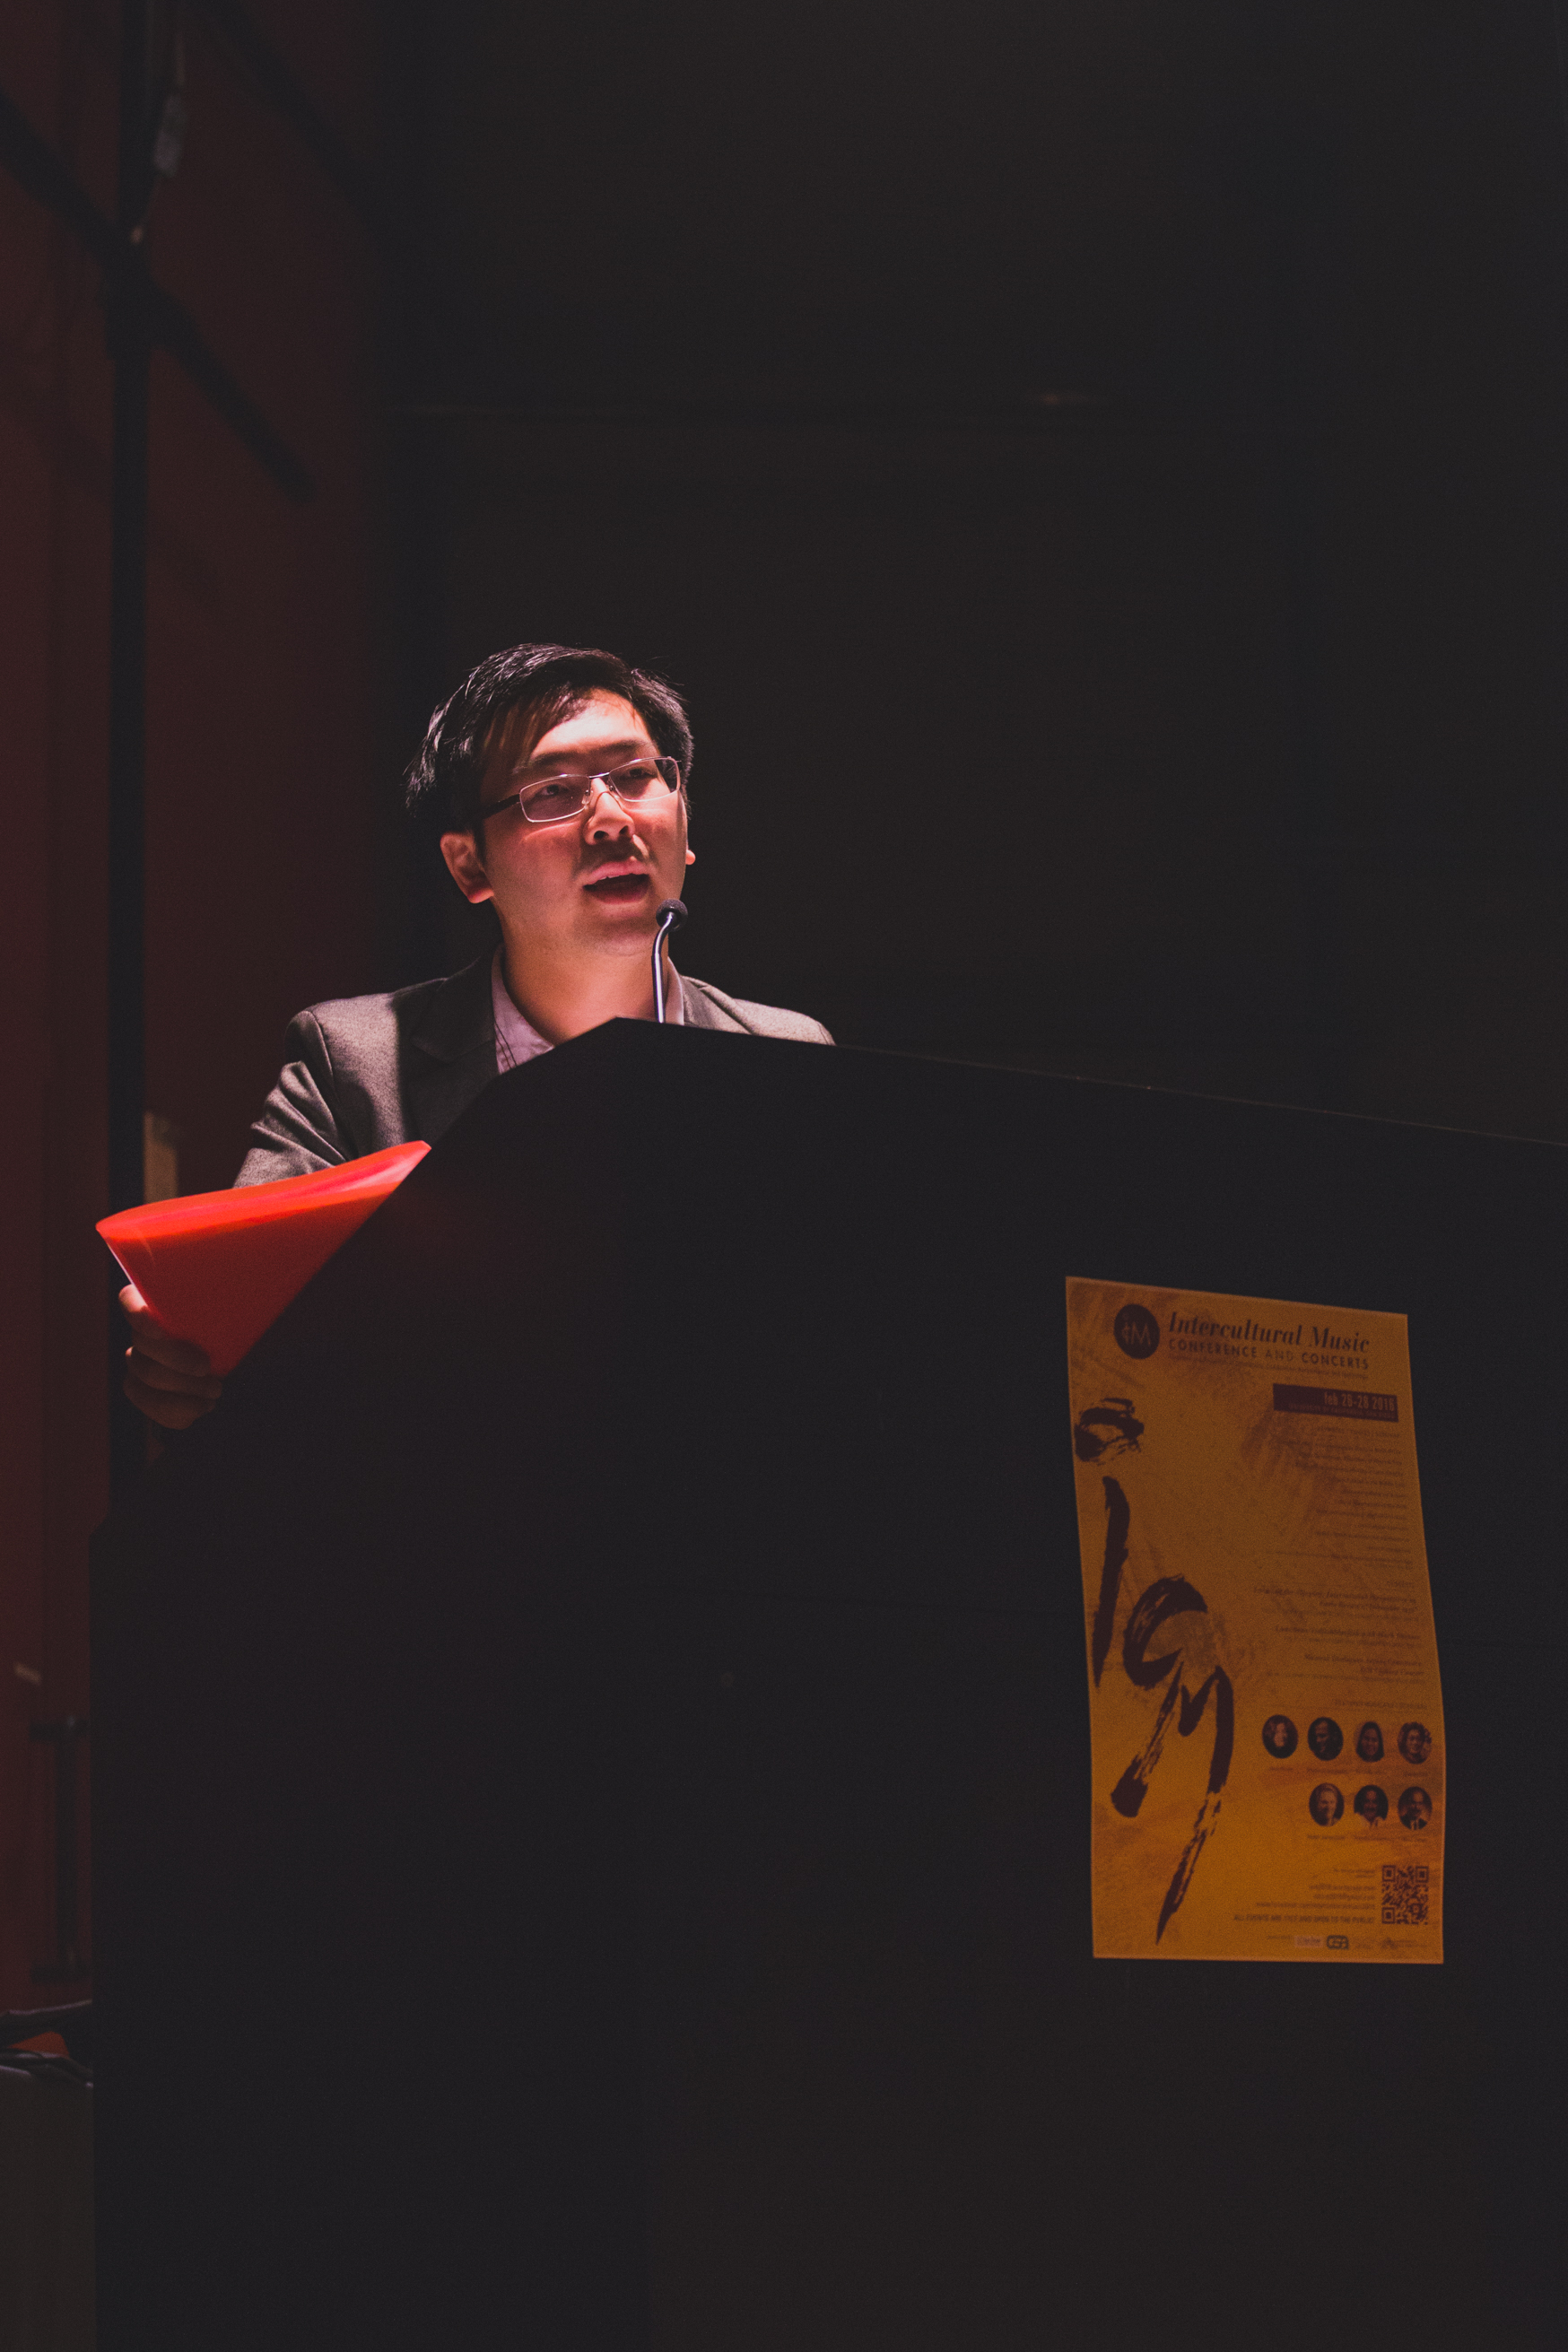 Siu Hei delivering the opening address at the Intercultural Music Conference in San Diego, California.